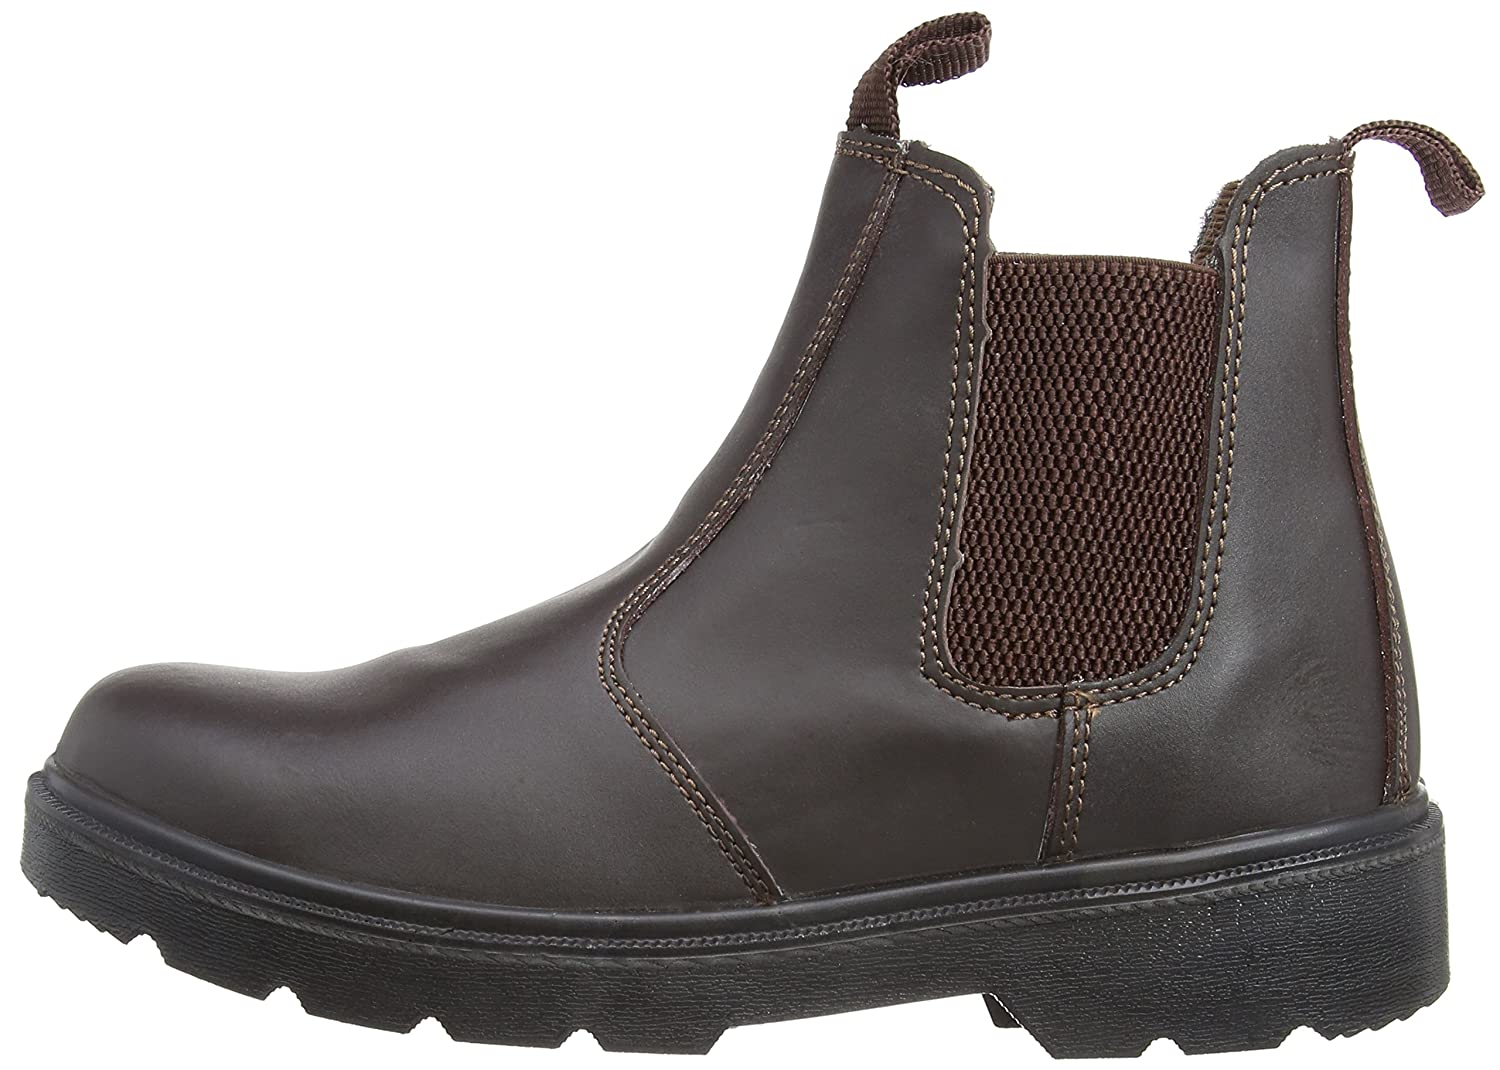 Black Rock SF12C Damen Sicherheitsschuhe Brown Braun ,EU Regular 36 UK 3